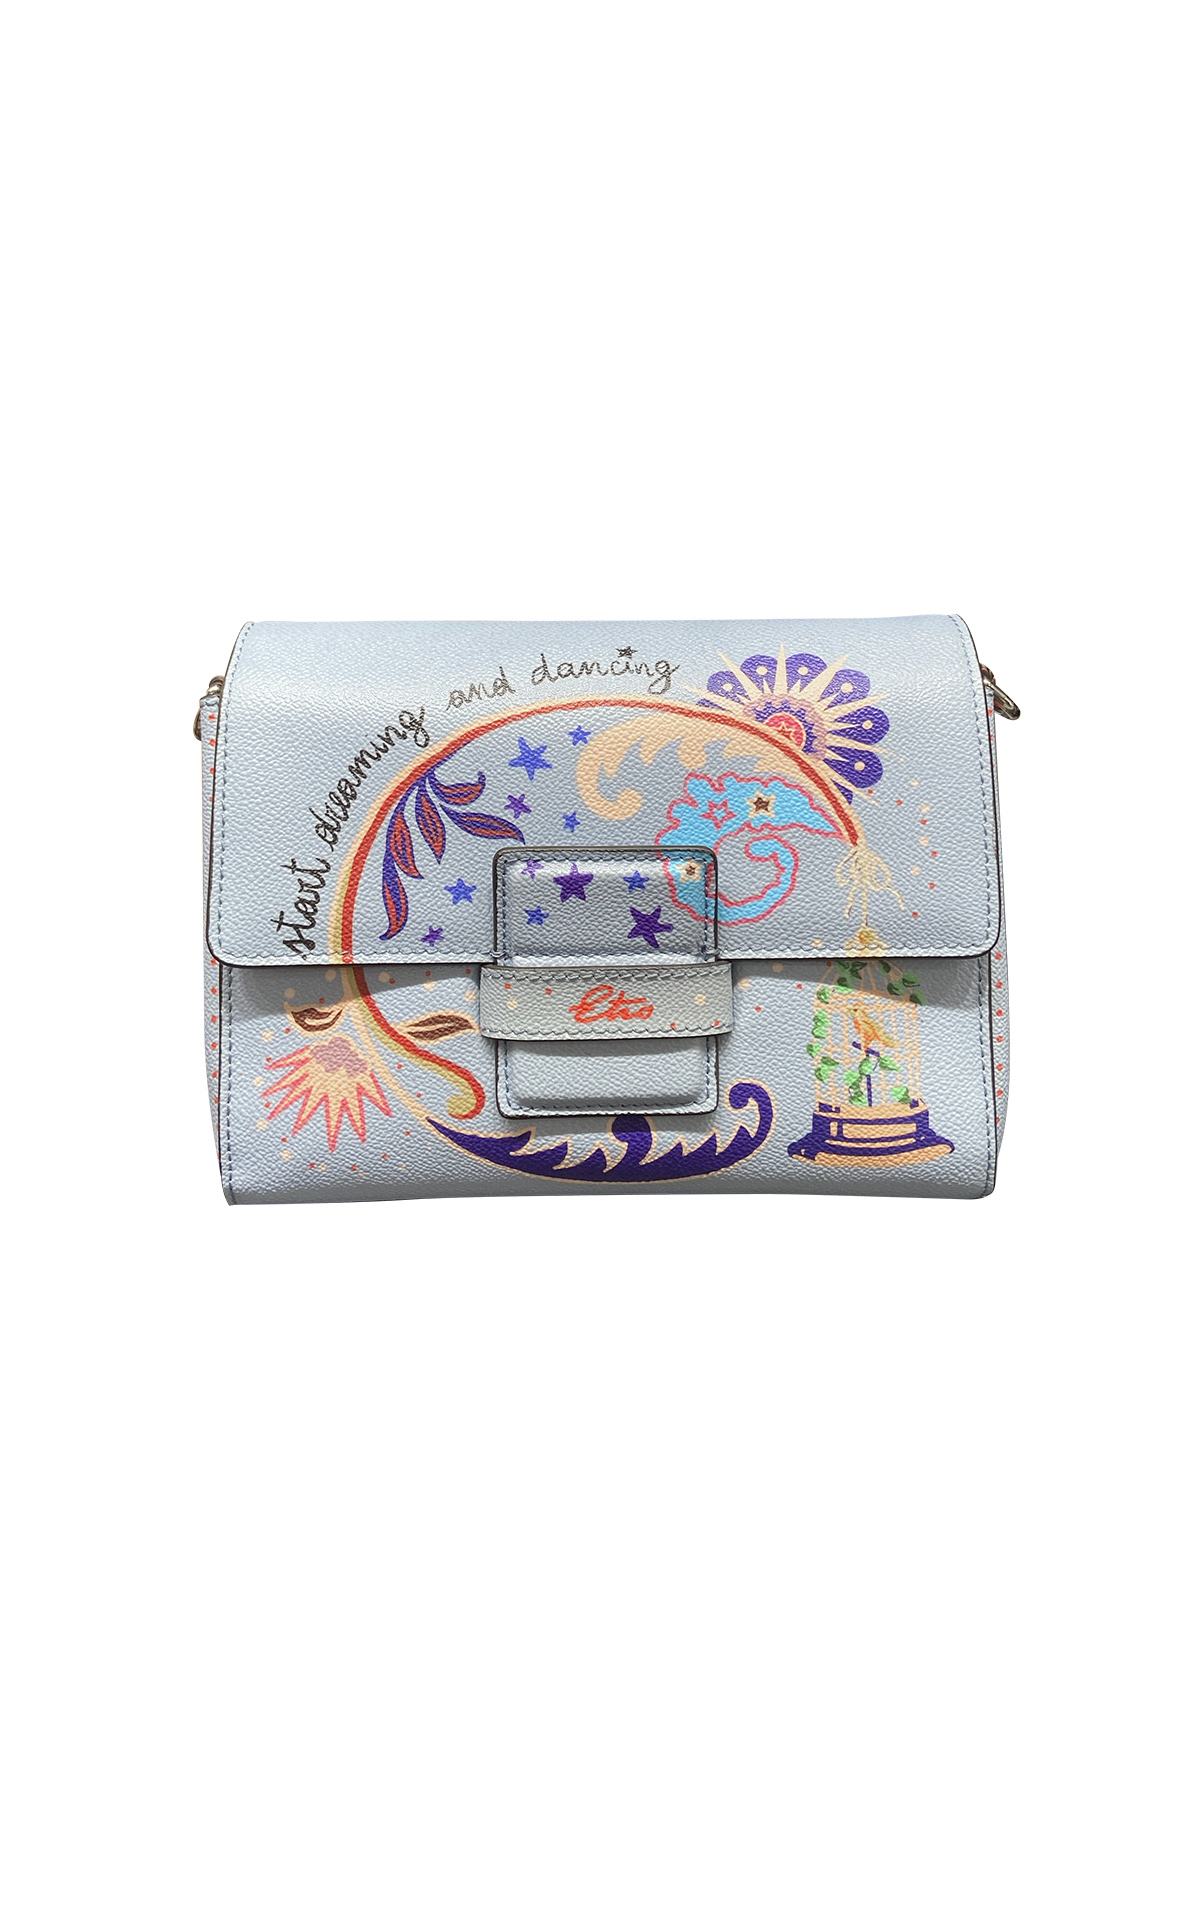 Printed bag from Etro